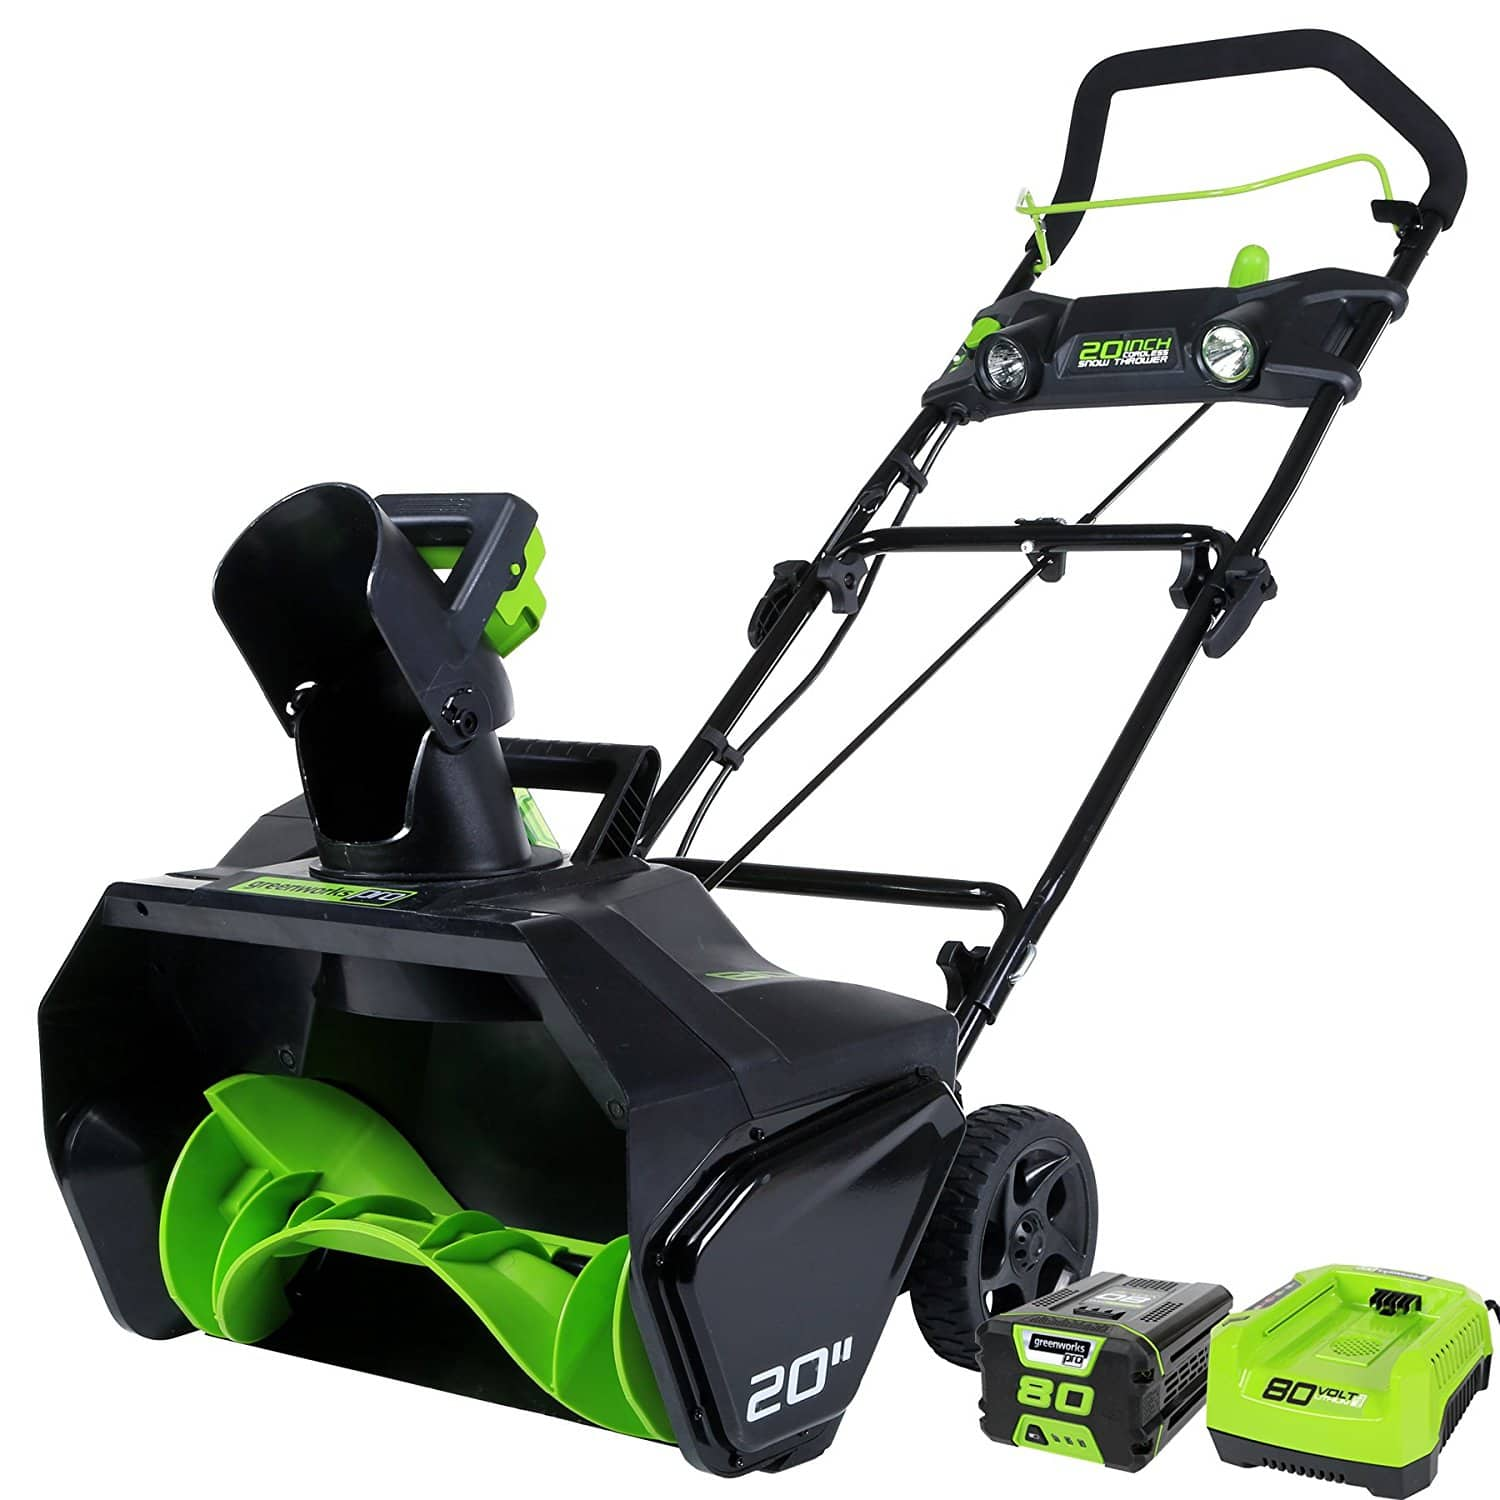 GreenWorks Pro 80V 20-Inch Cordless Snow Thrower, 2Ah Battery & Charger Included $219 or 206.75 $206.75